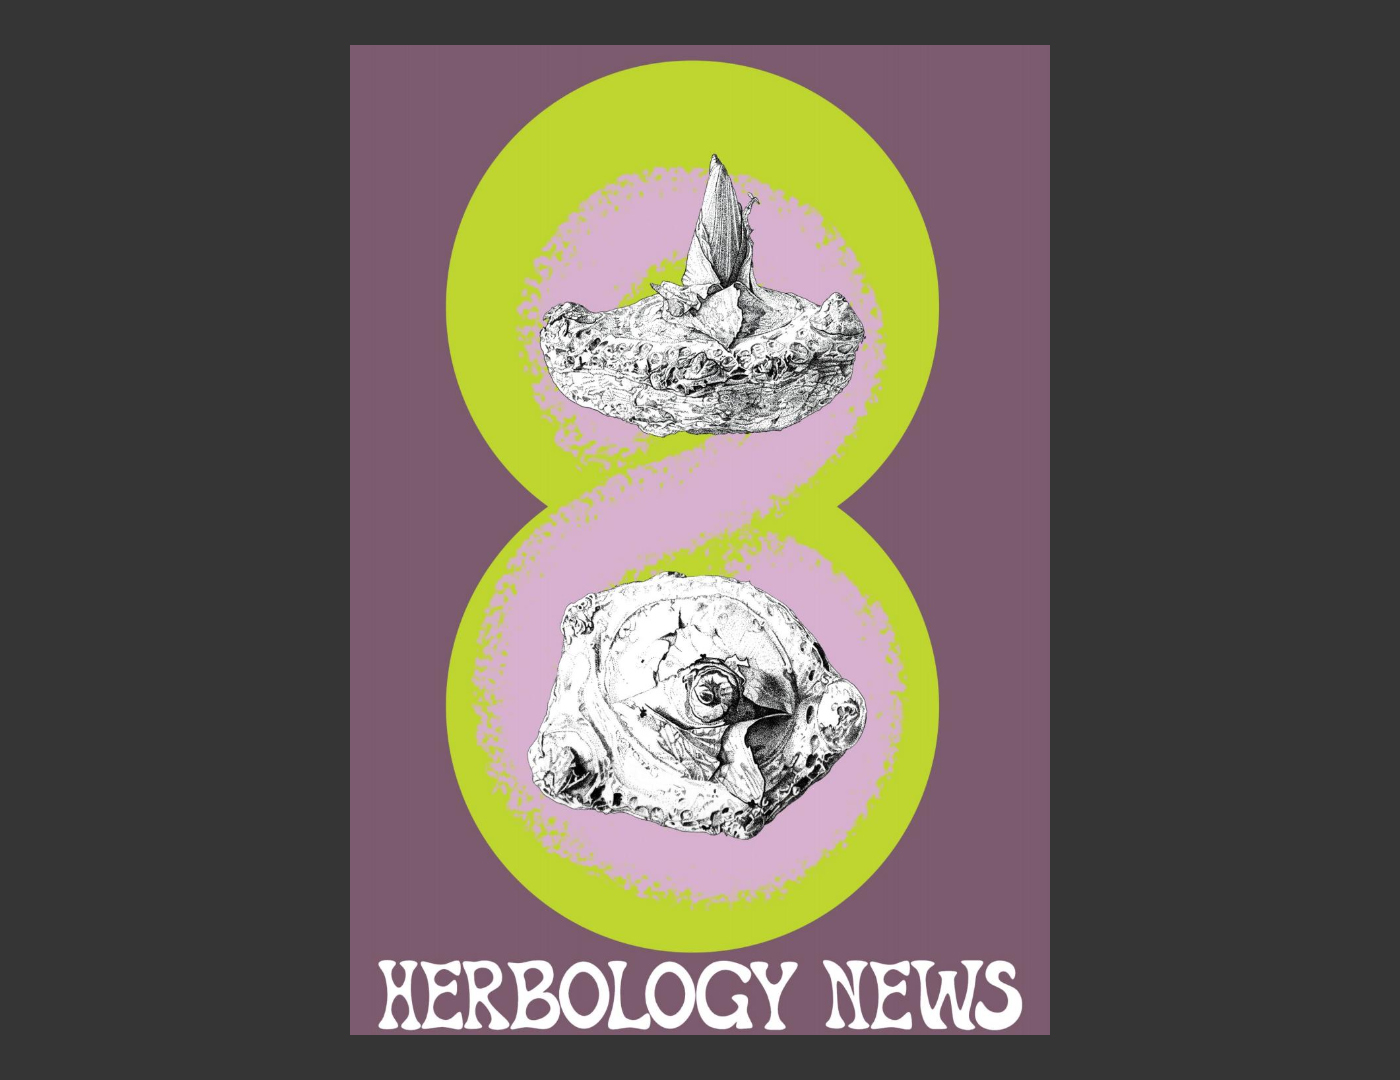 Herbology News - The Energy Issue - cover by Marianne Hazlewood